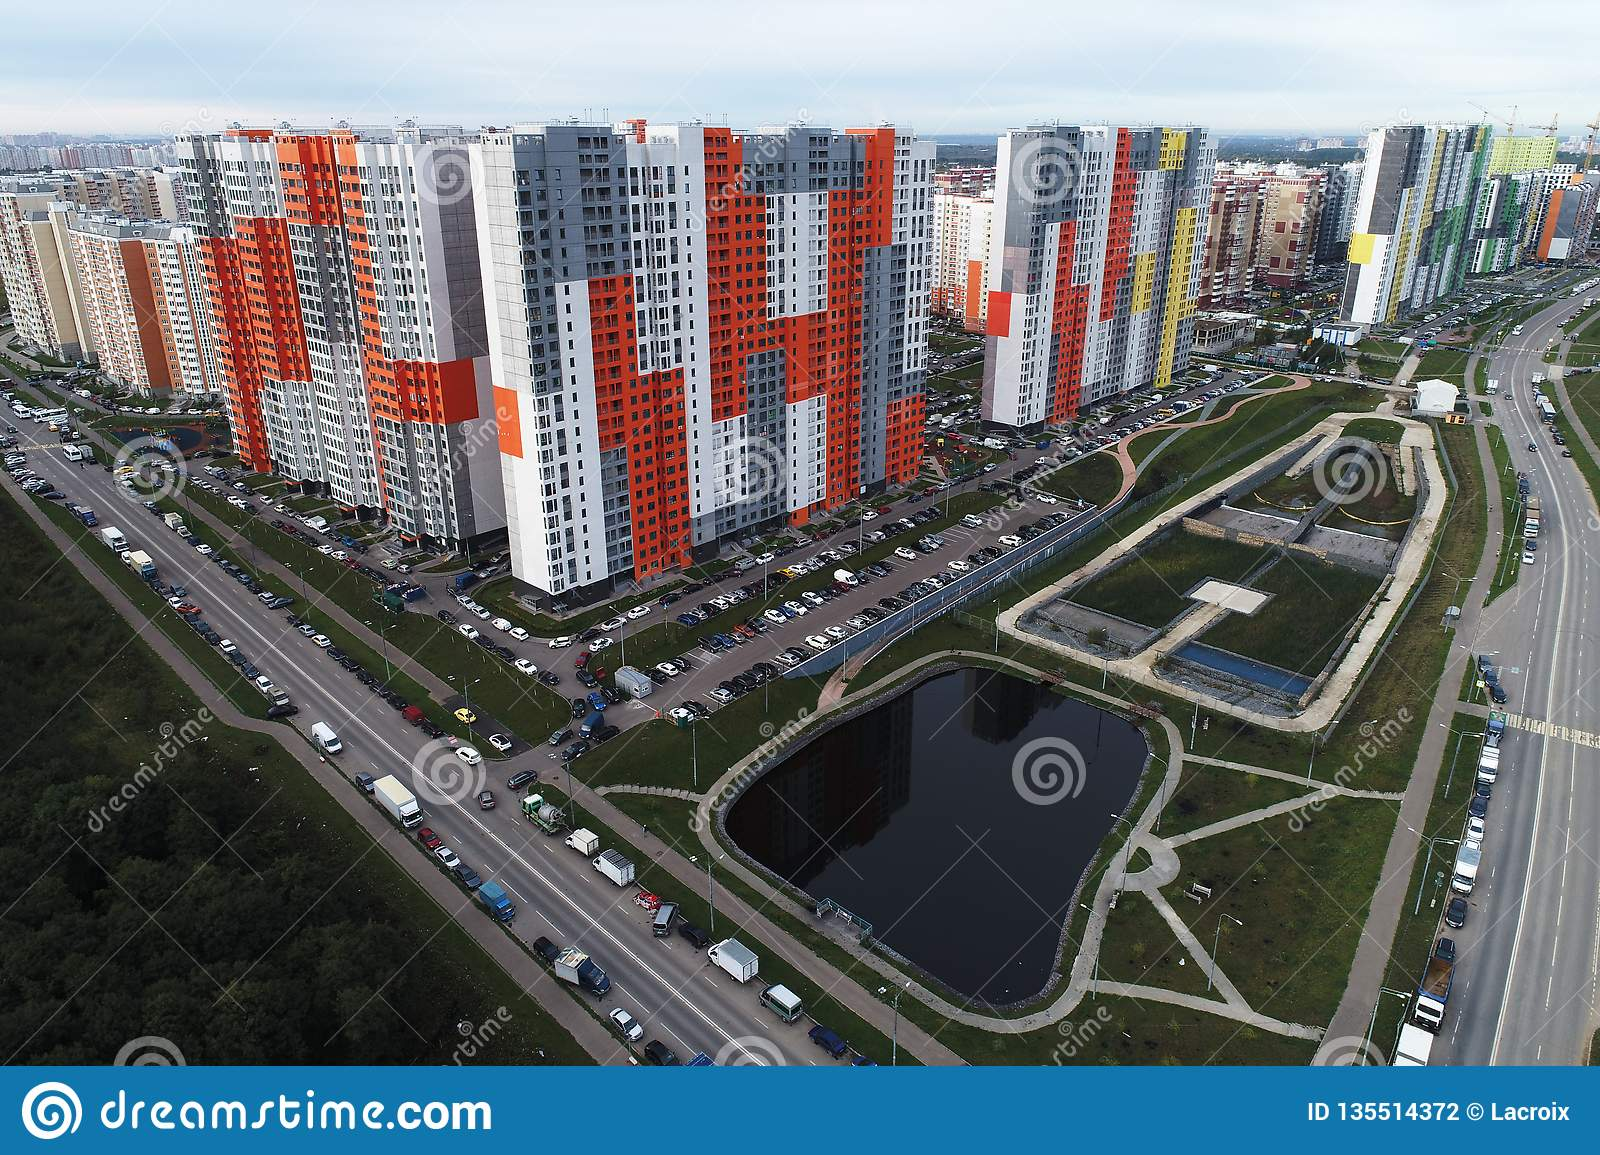 Beautiful urban landscape and real estate `Butovo Park 2` district, Moscow, Russia